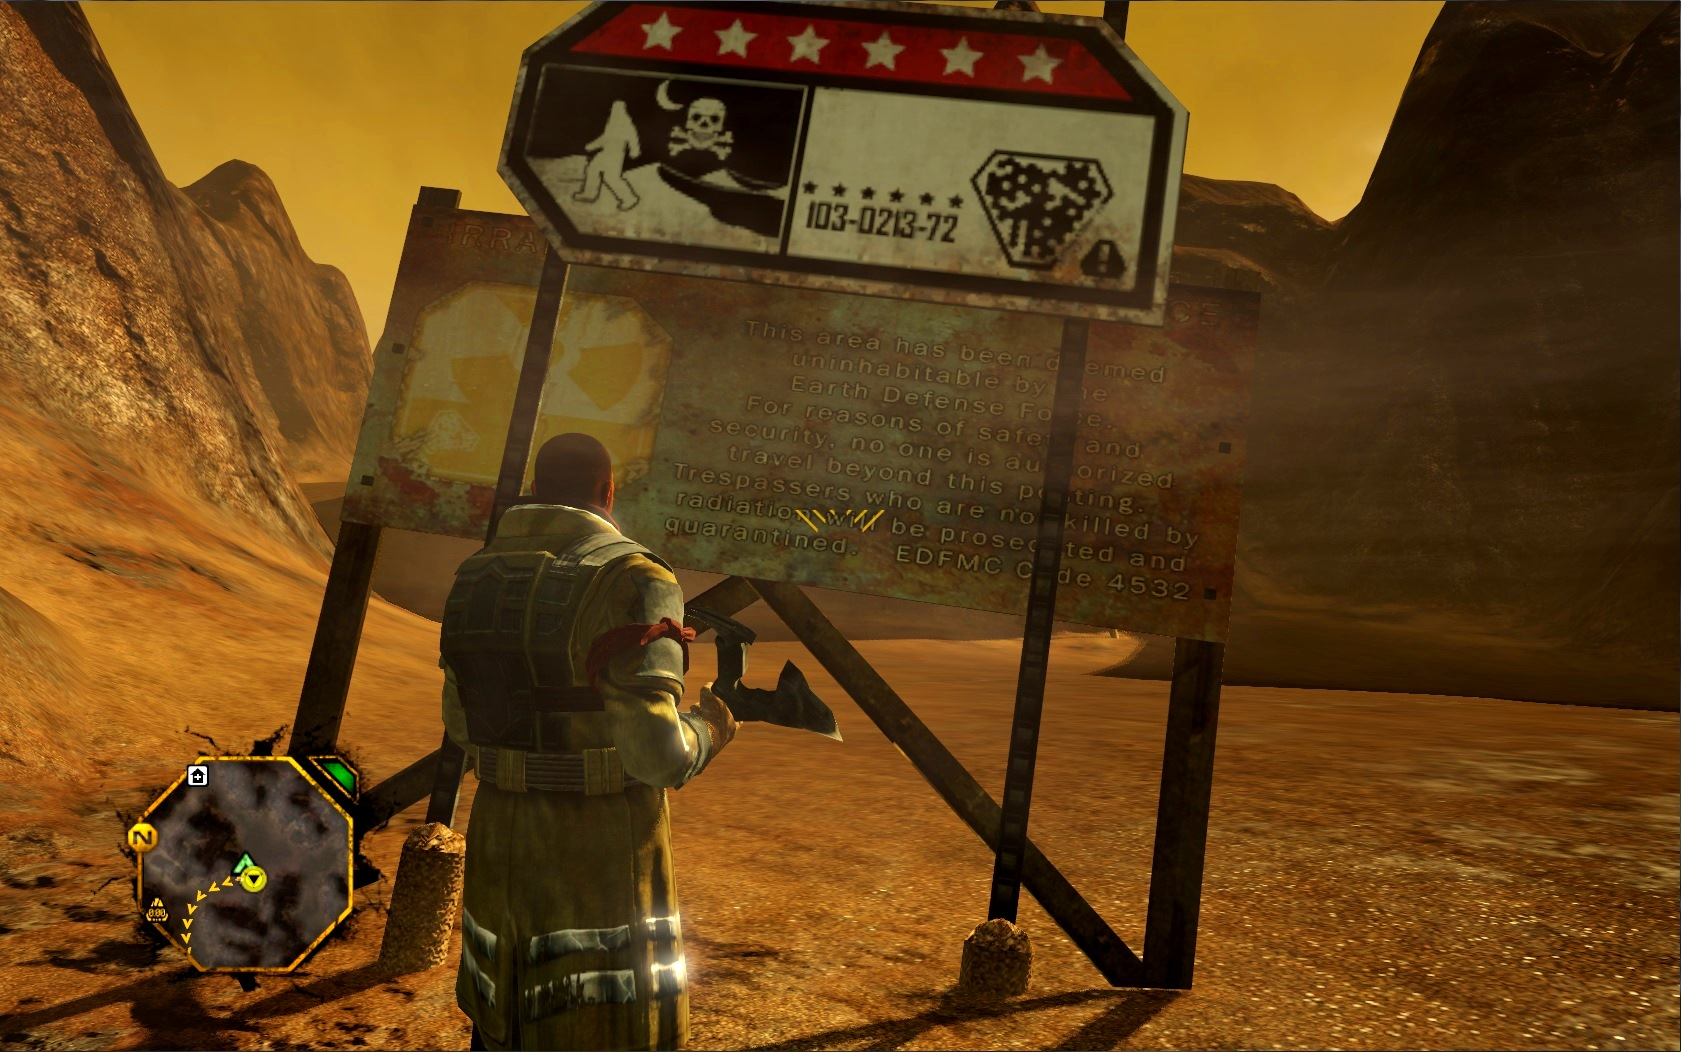 Red Faction Cheats Codes and Secrets for PC - GameFAQs